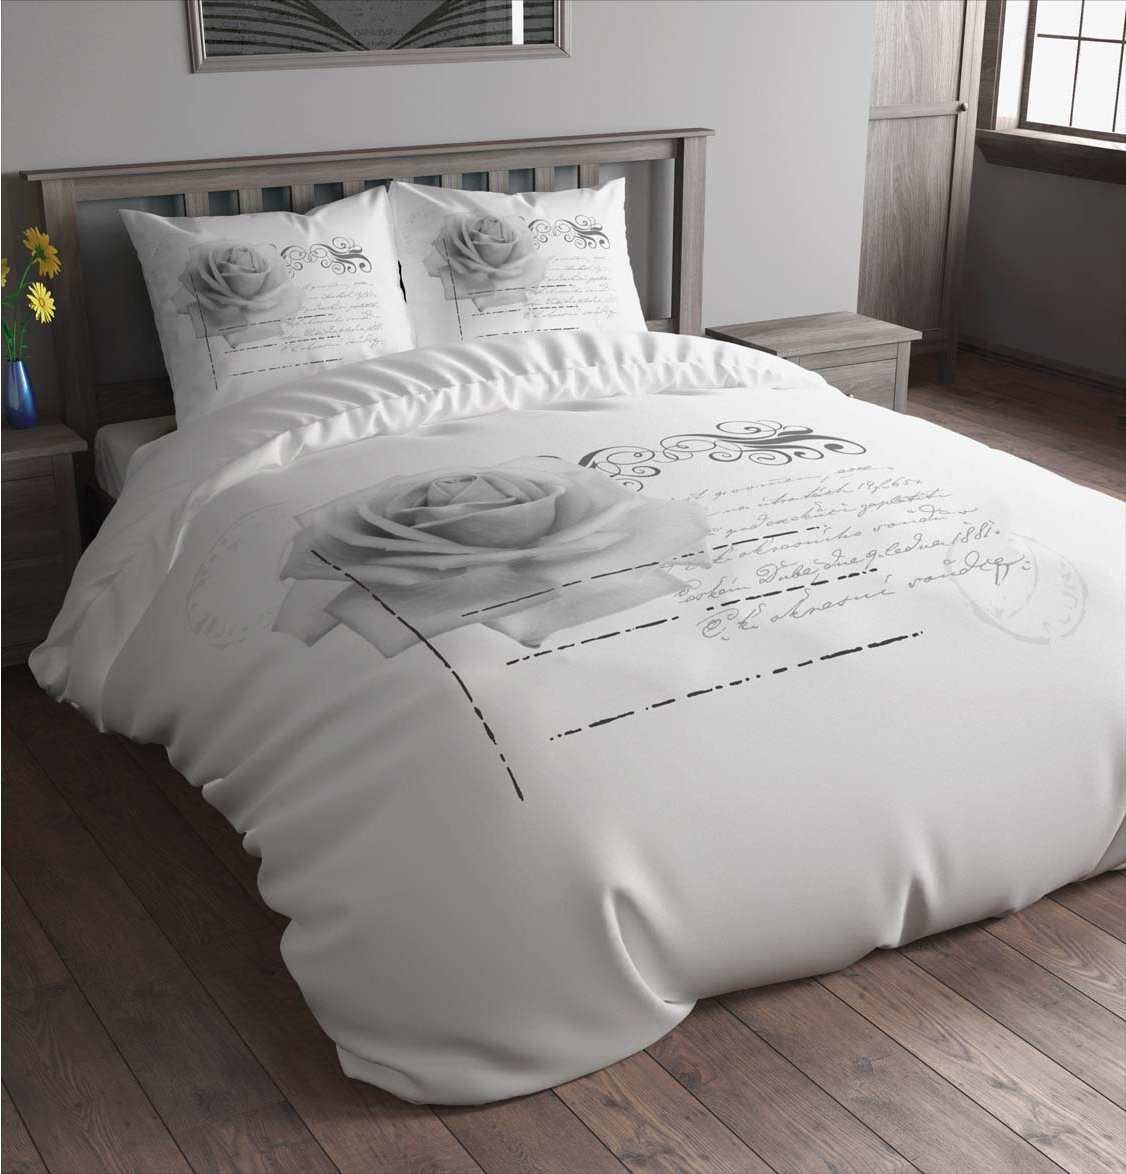 White Duvet Cover Meaning